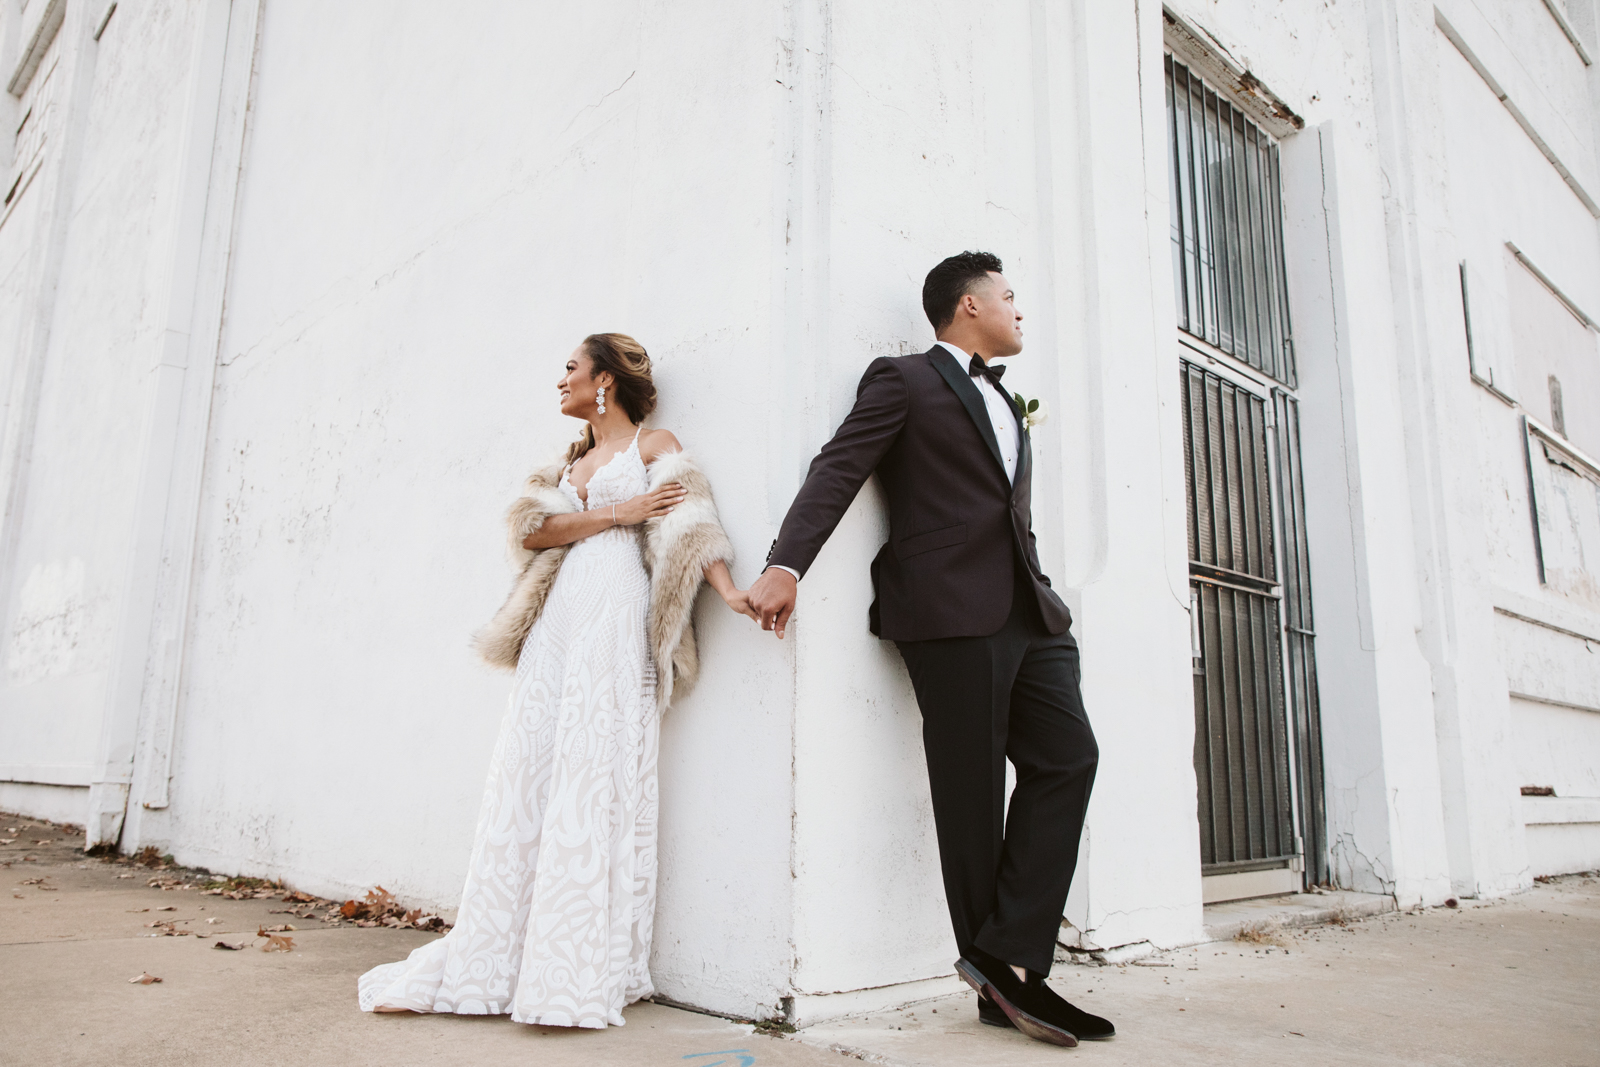 Destination wedding photographer Barcelona | Natalia Wisniewska Photography